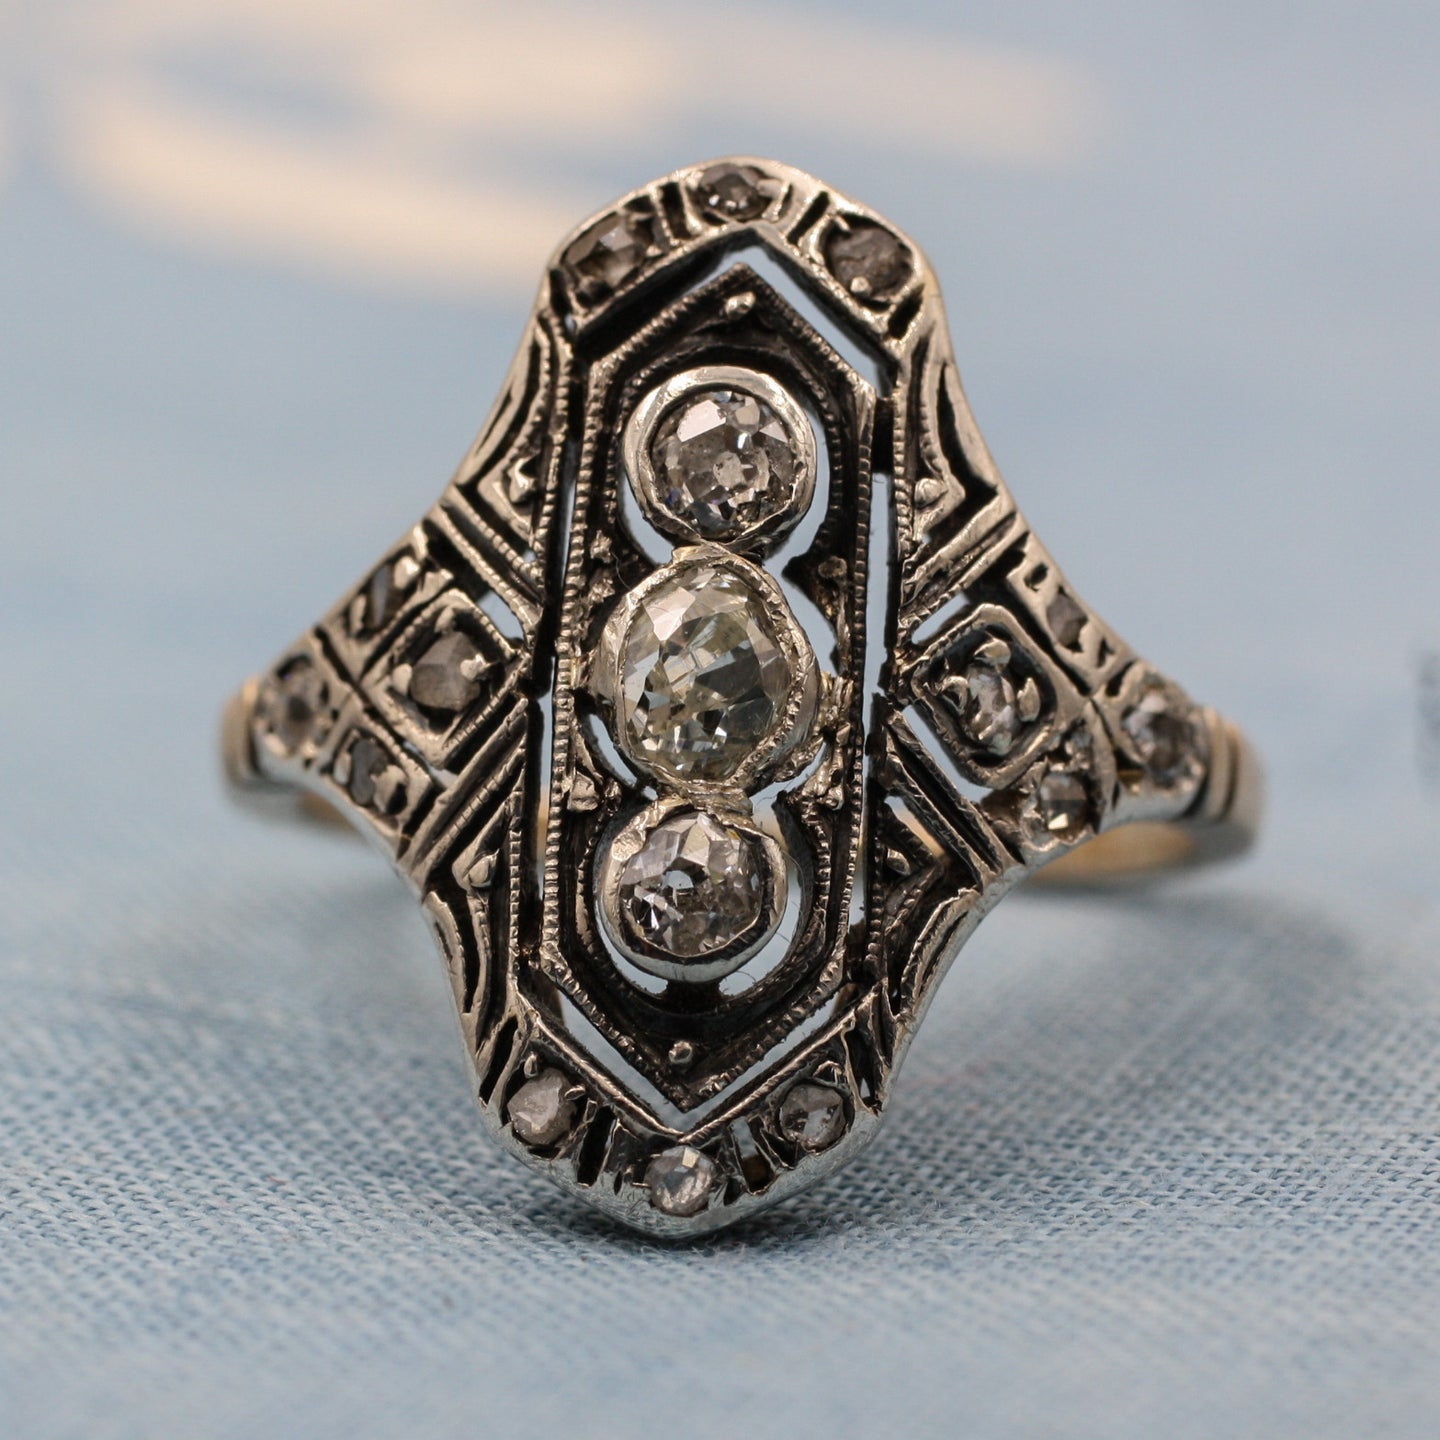 c1870 Diamond Two-tone Dinner Ring